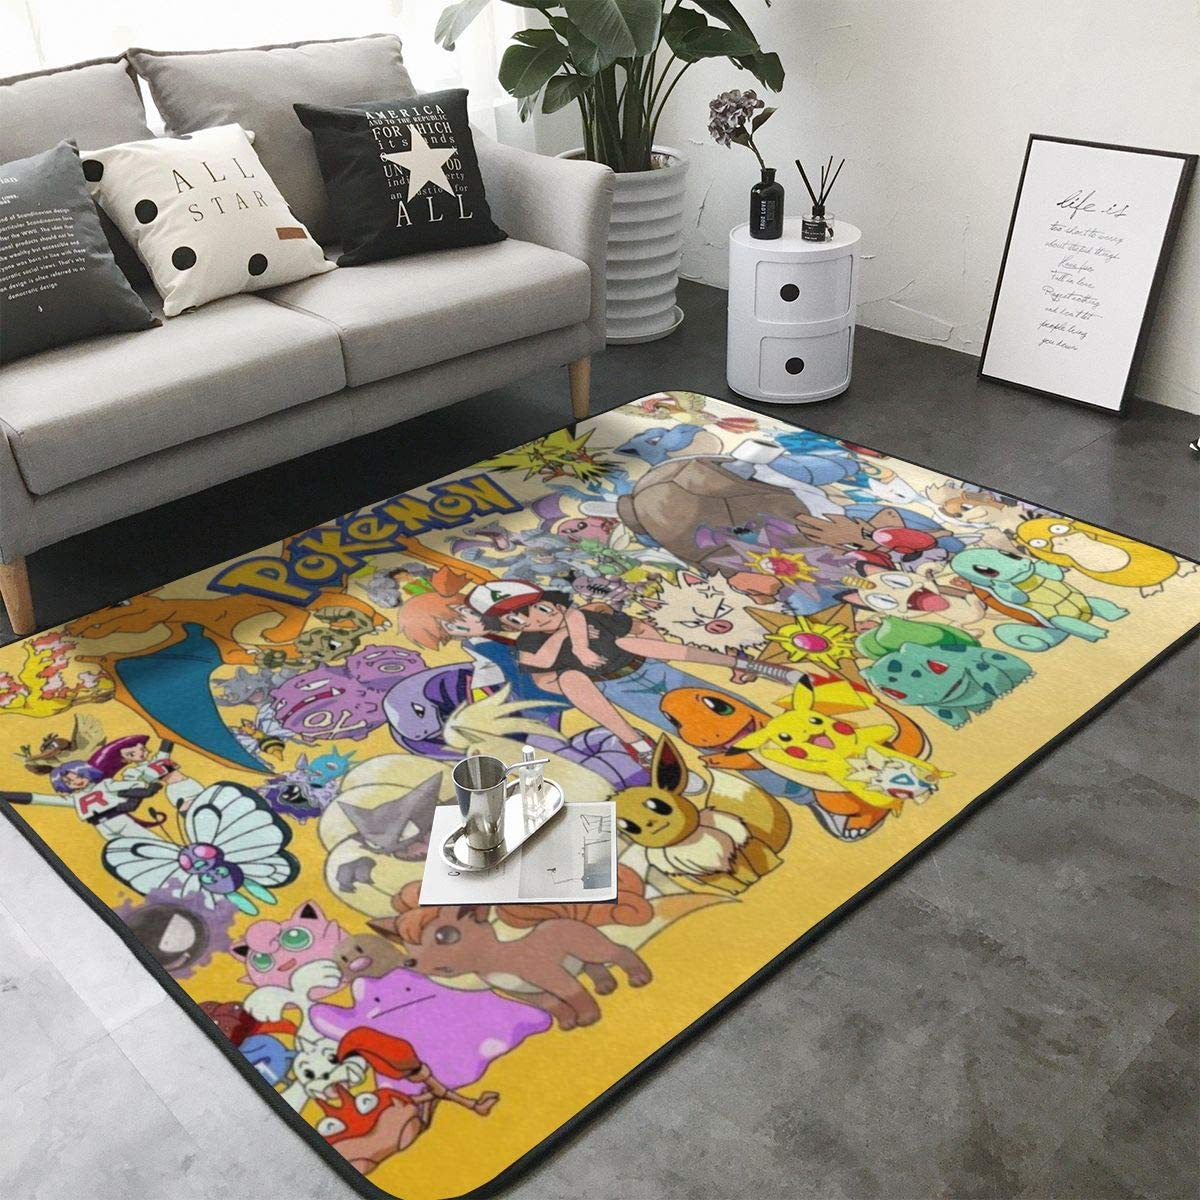 Poke-mon Ee-v-ee (4) Home Decoration Large Rug Floor Carpet Yoga Mat, Modern Area Rug for Children Kid Playroom Bedroom 63 x 48 inch